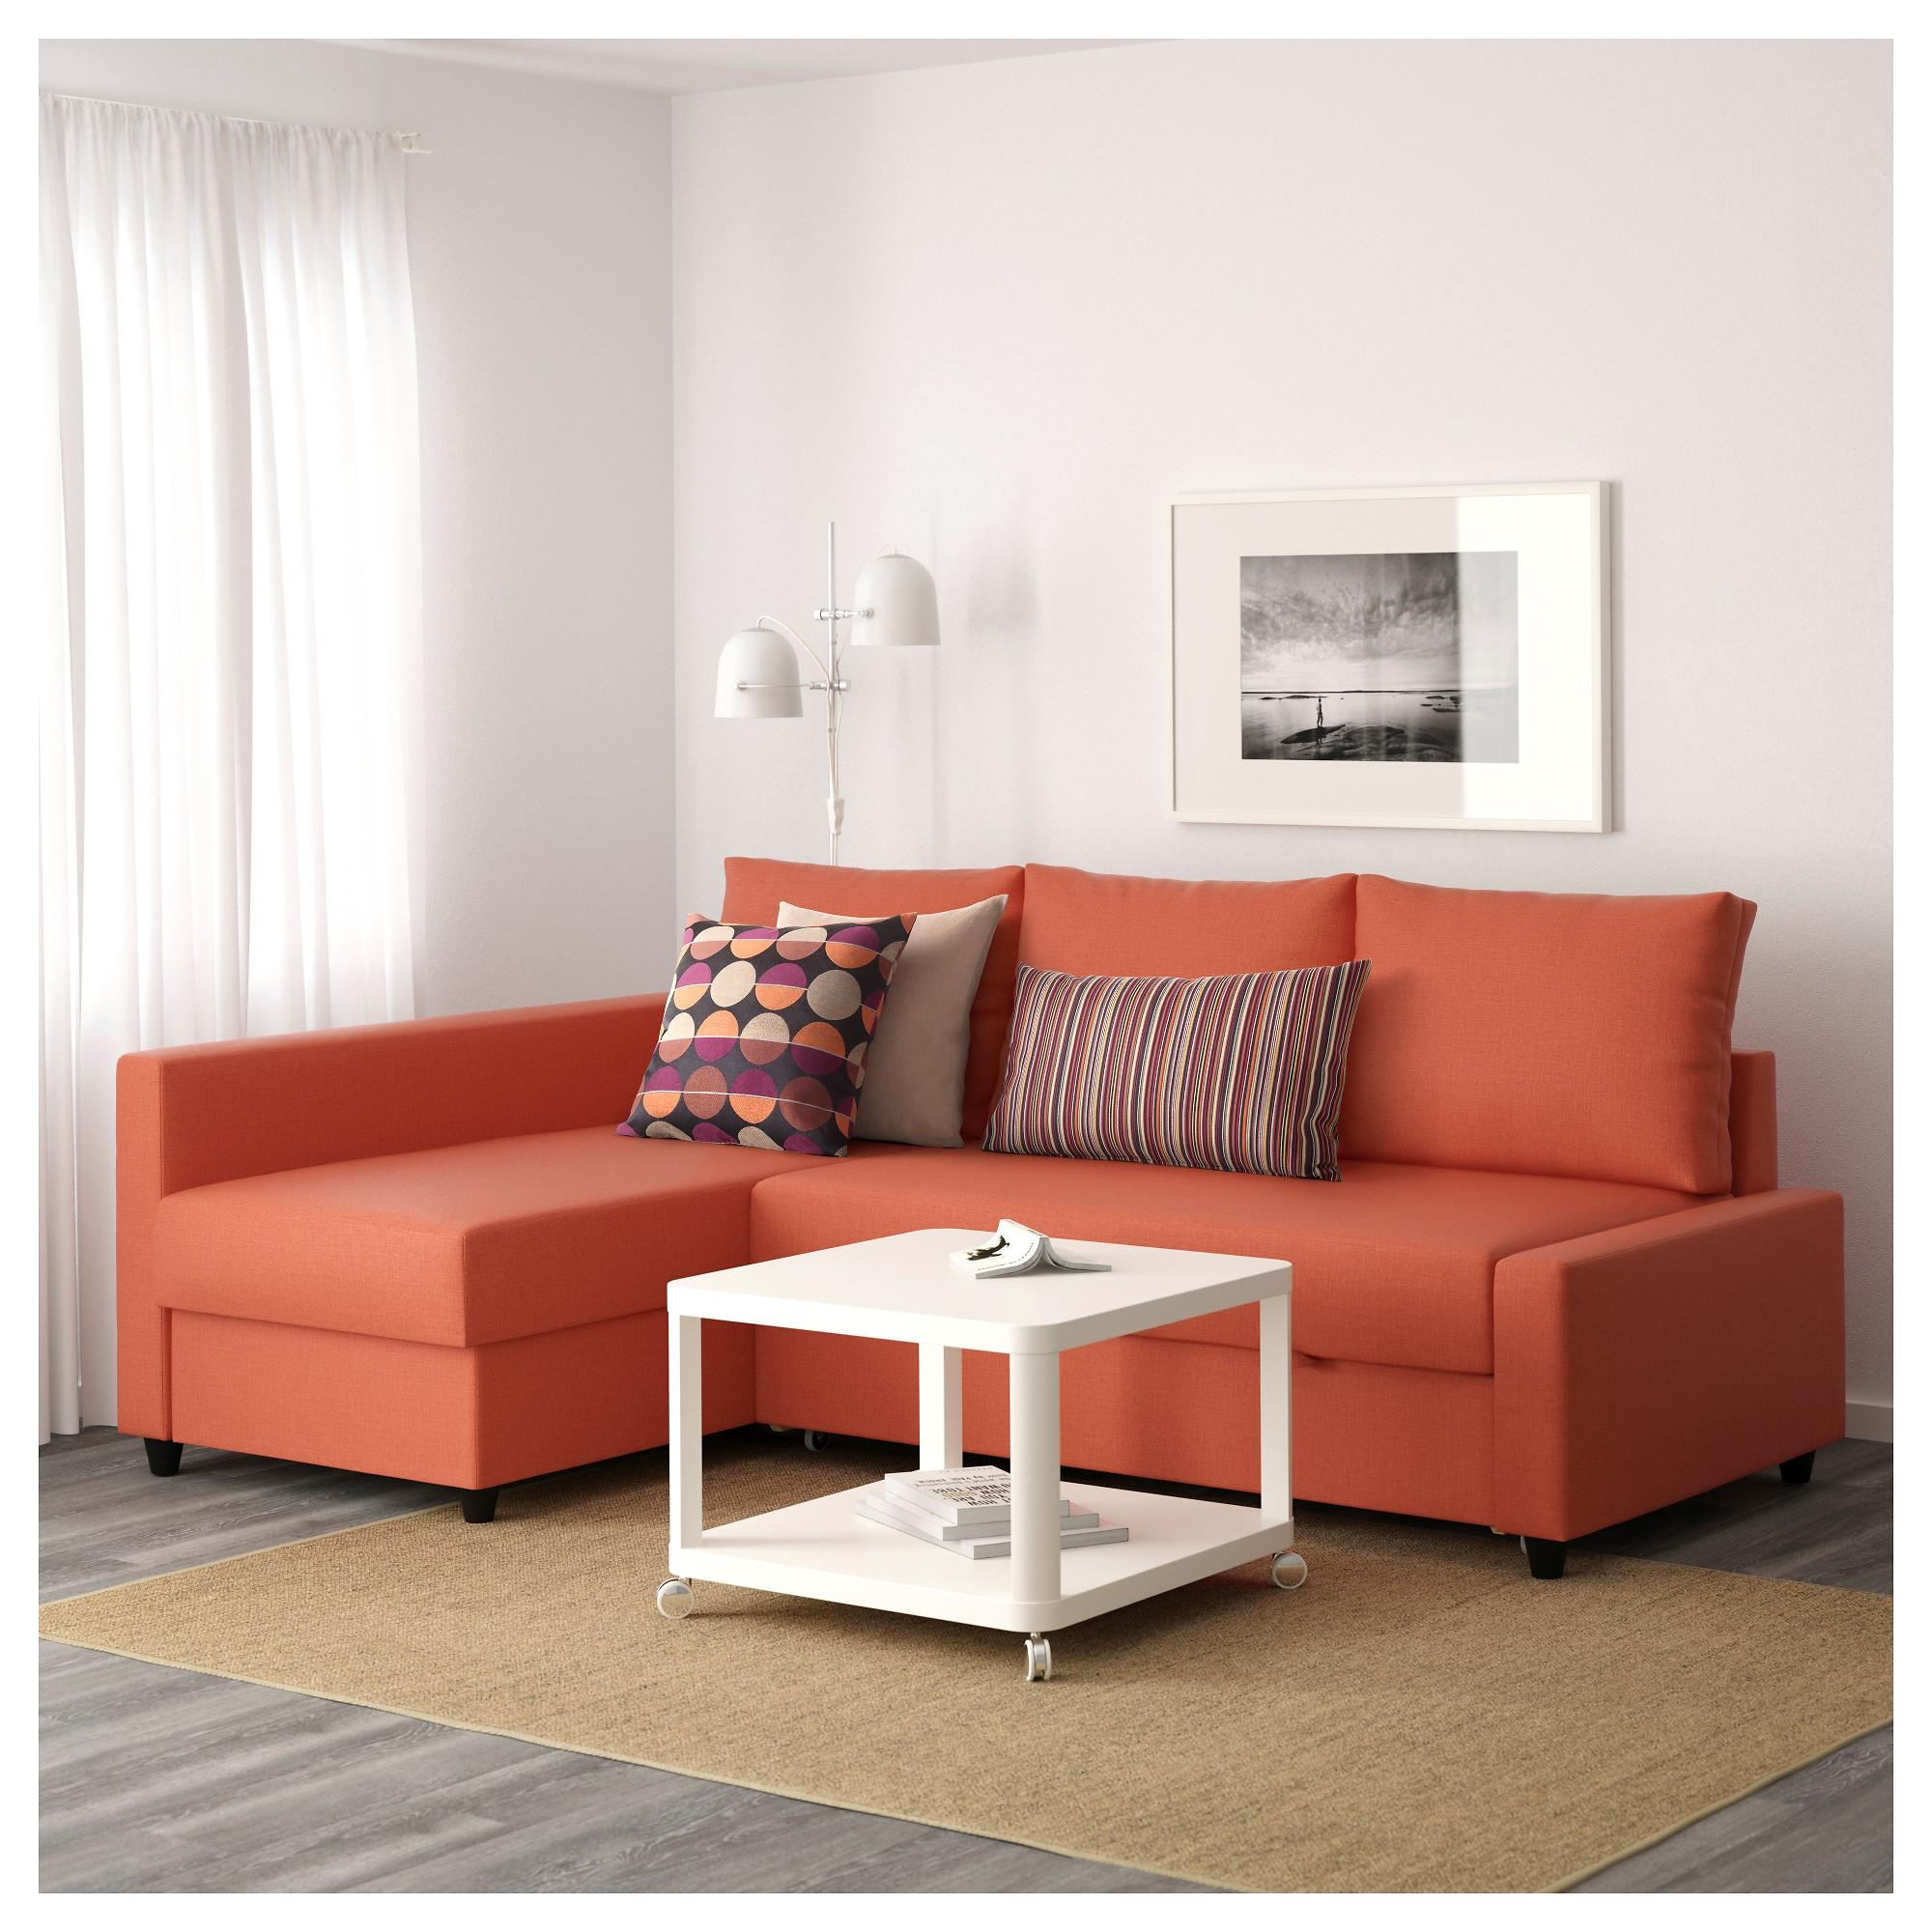 Sofa Orange Orange Ikea Sofa Tylosand Sofa Bed From Ikea Apartment